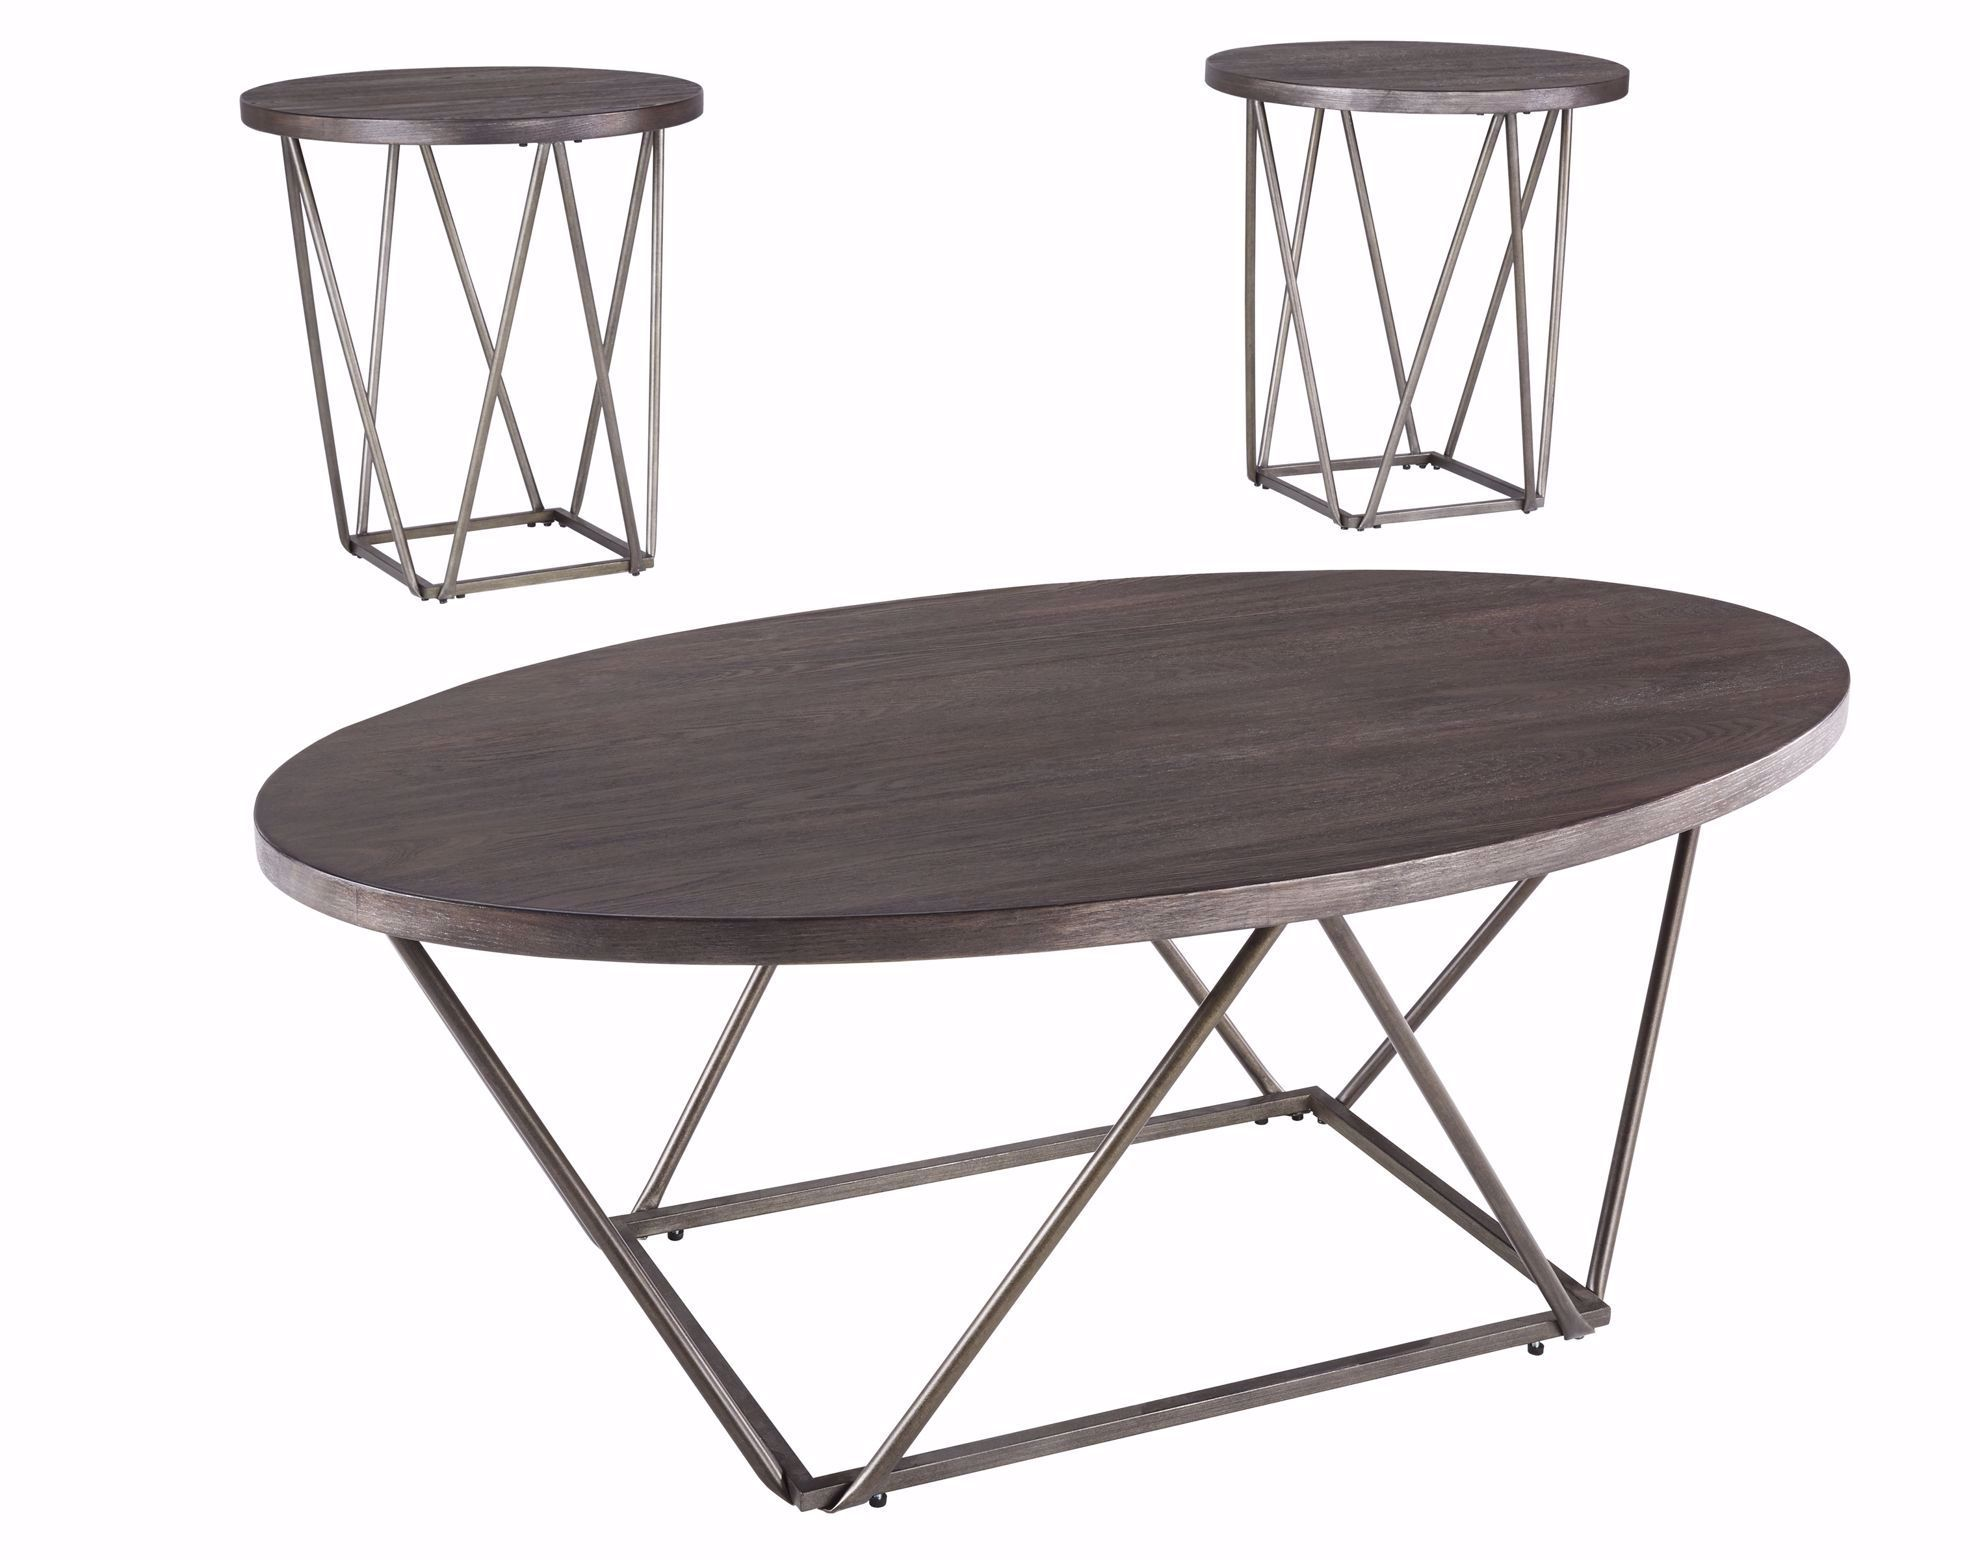 Picture of Neimhurst 3 Pack Tables